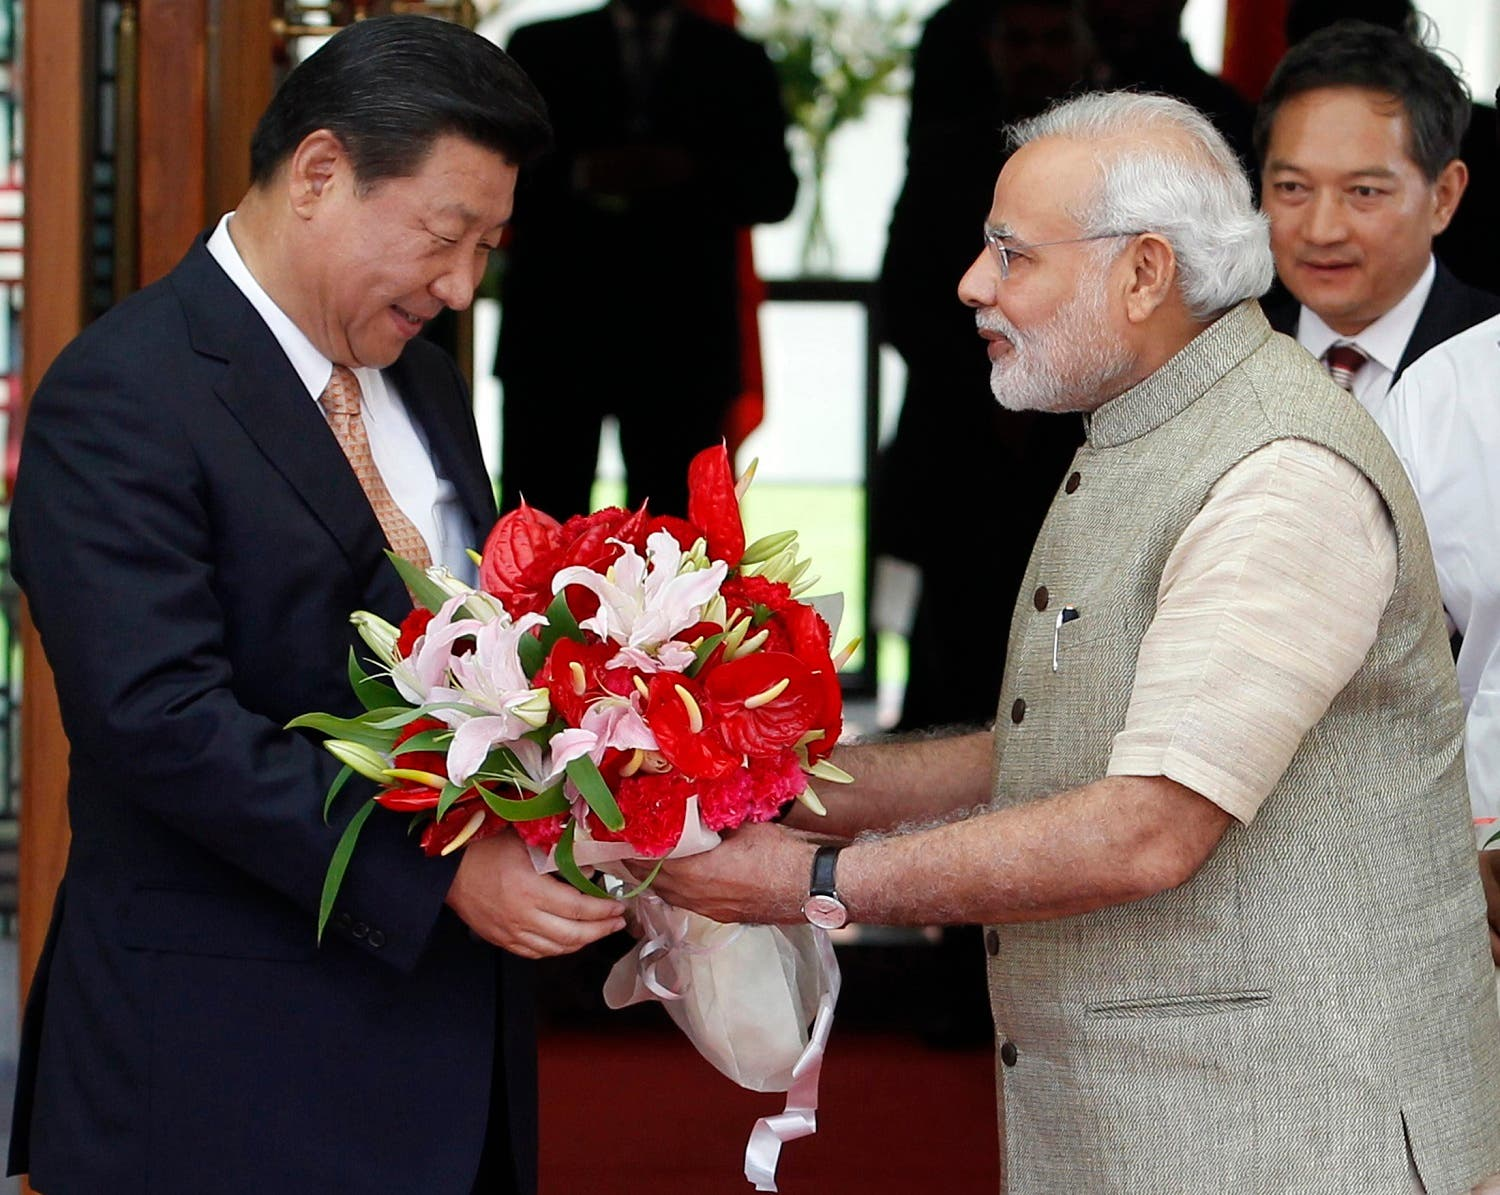 India's Prime Minister Narendra Modi presents a bouquet to China's President Xi Jinping (L) before their meeting in the western Indian city of Ahmedabad September 17, 2014. (Reuters)